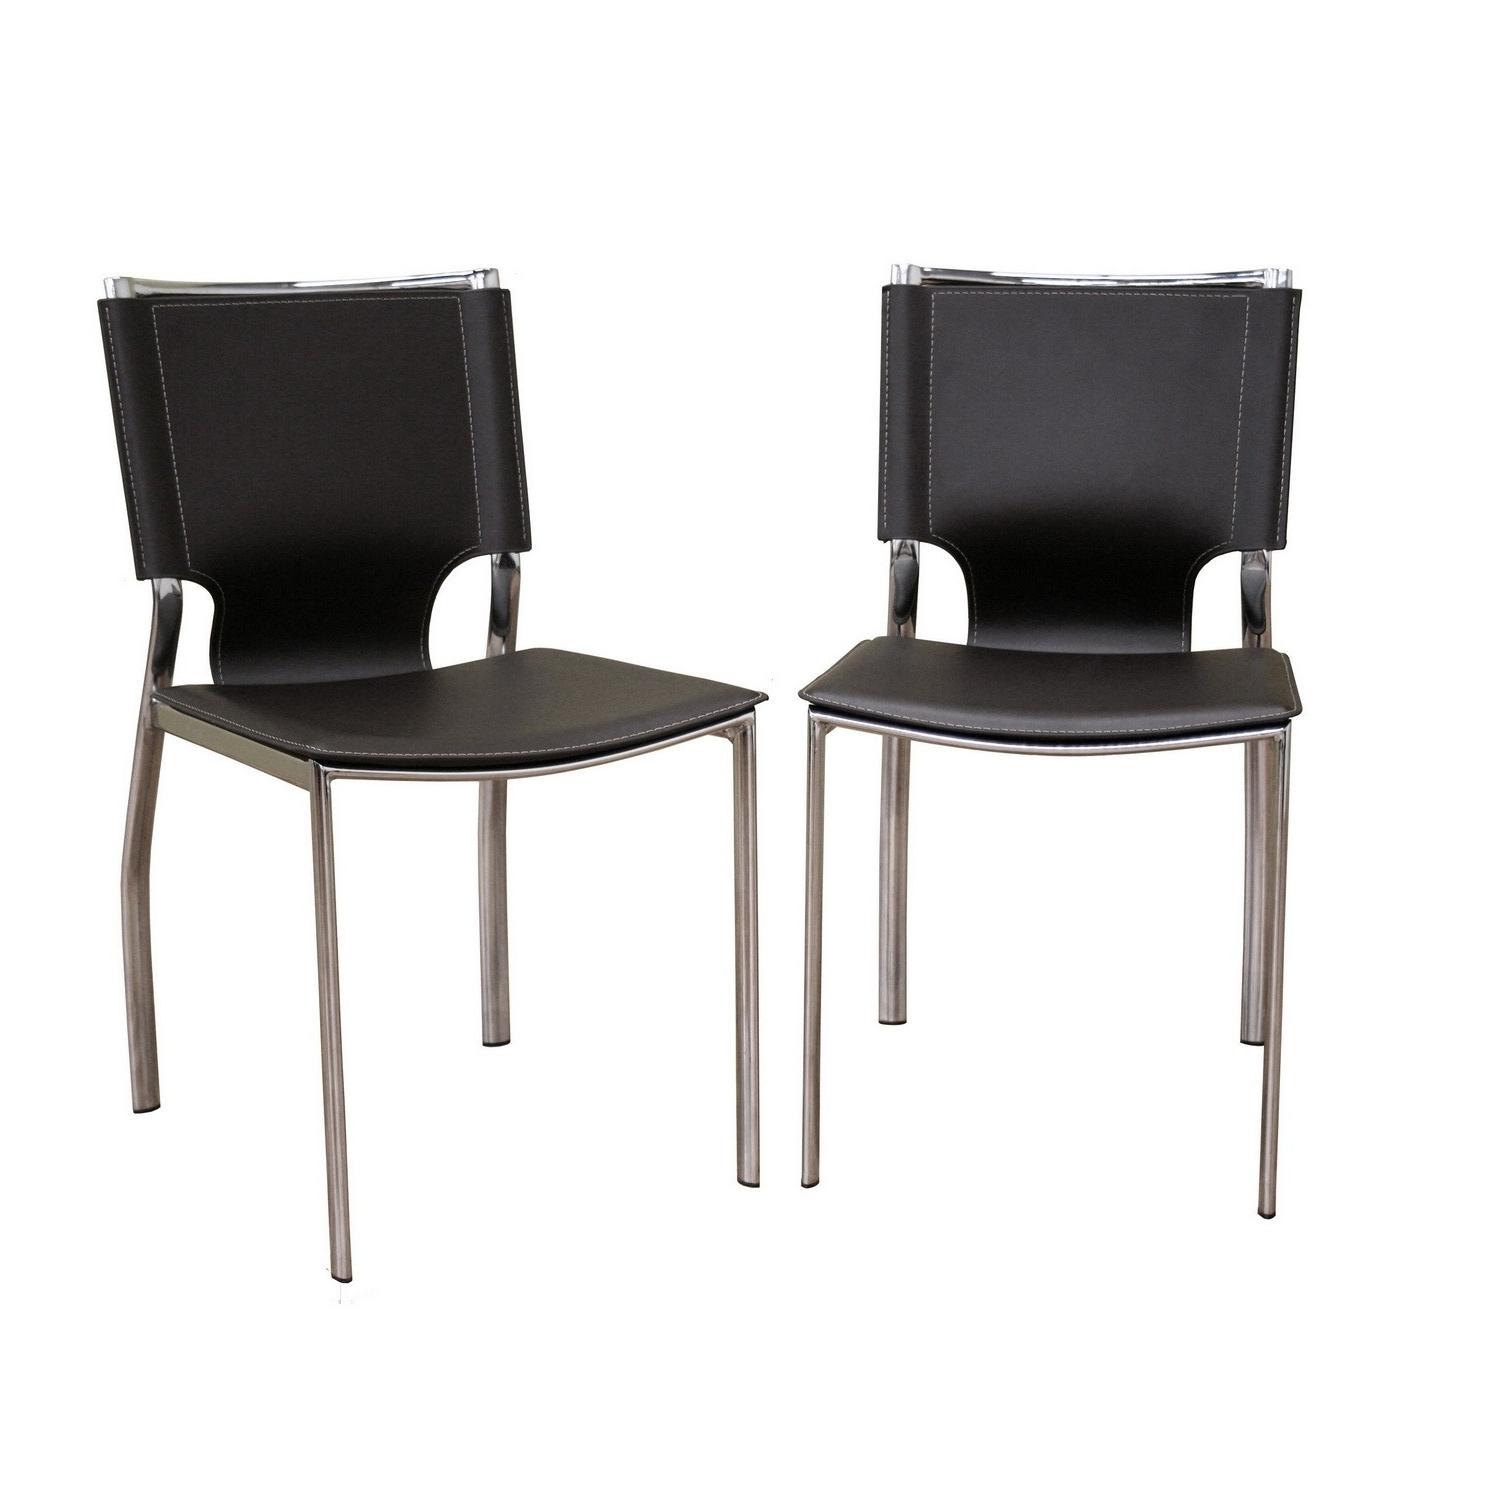 Dark Brown Leather Dining Chairs within Recent Dark Brown Leather Dining Chair With Chrome Frame